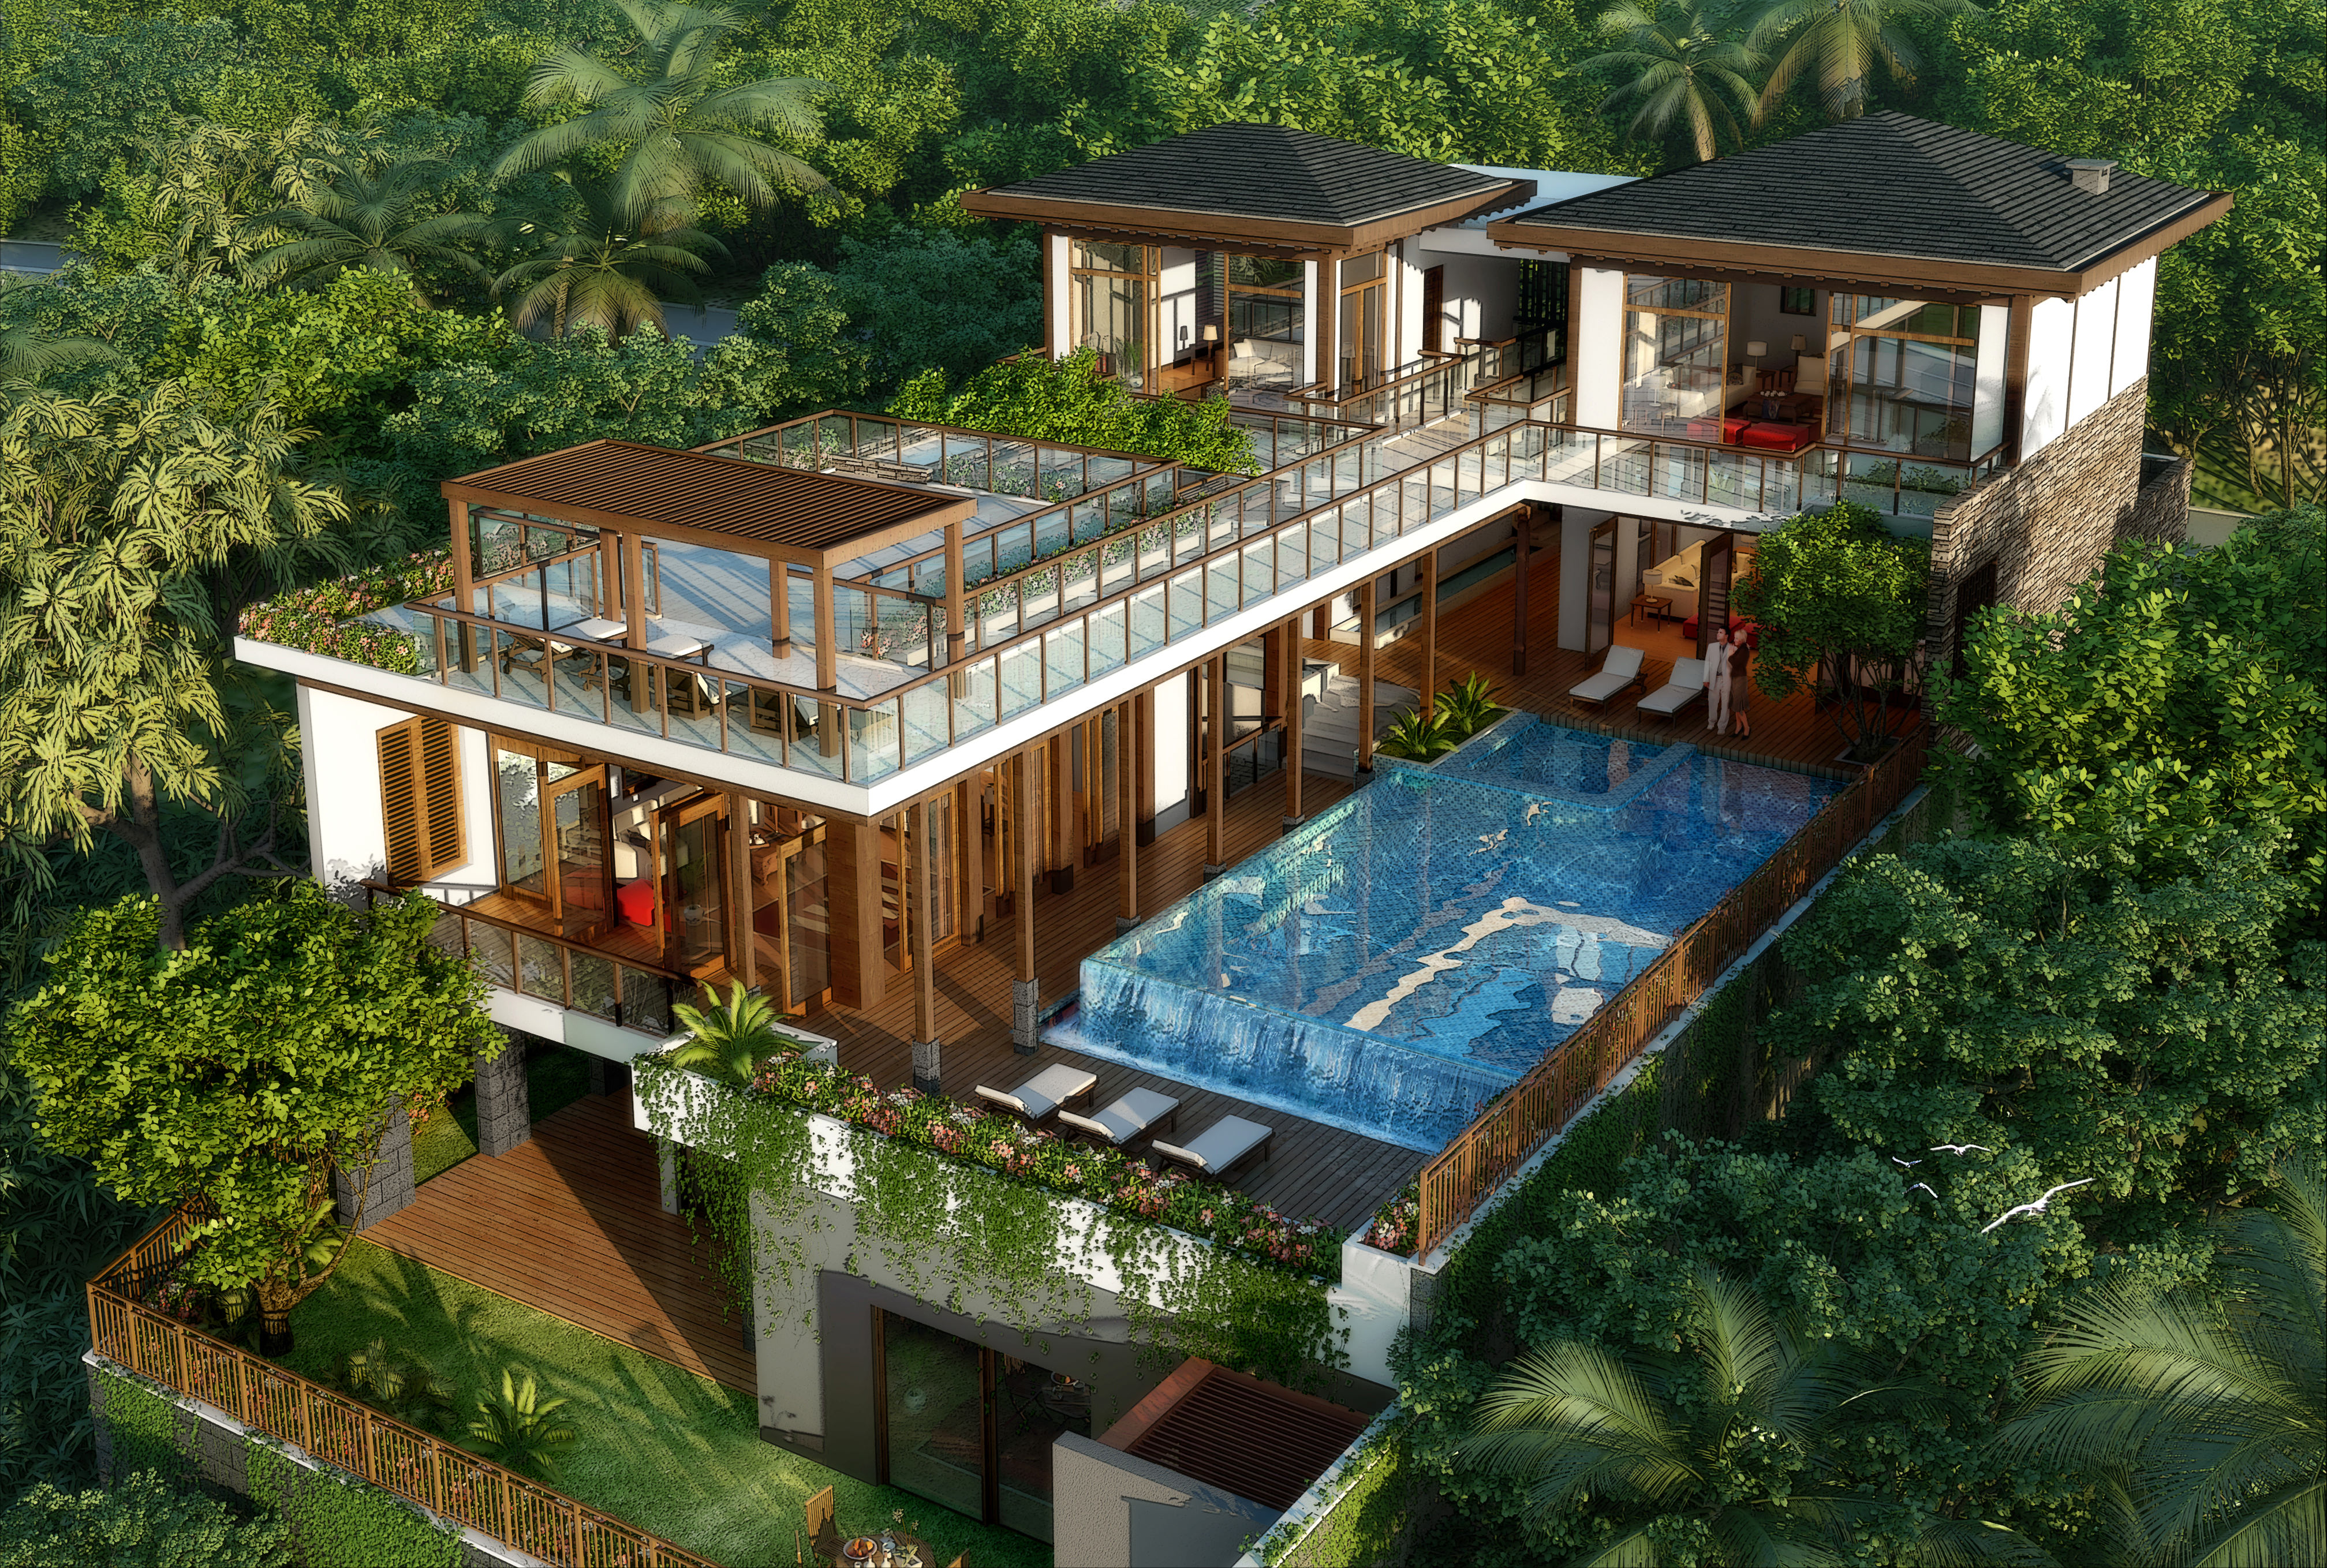 luxurious_tropical_house_with_a_pool_in_nature_3d_model_max__fe0e83b6 1d2d 49cb 8c69 bd5dc7395c3c